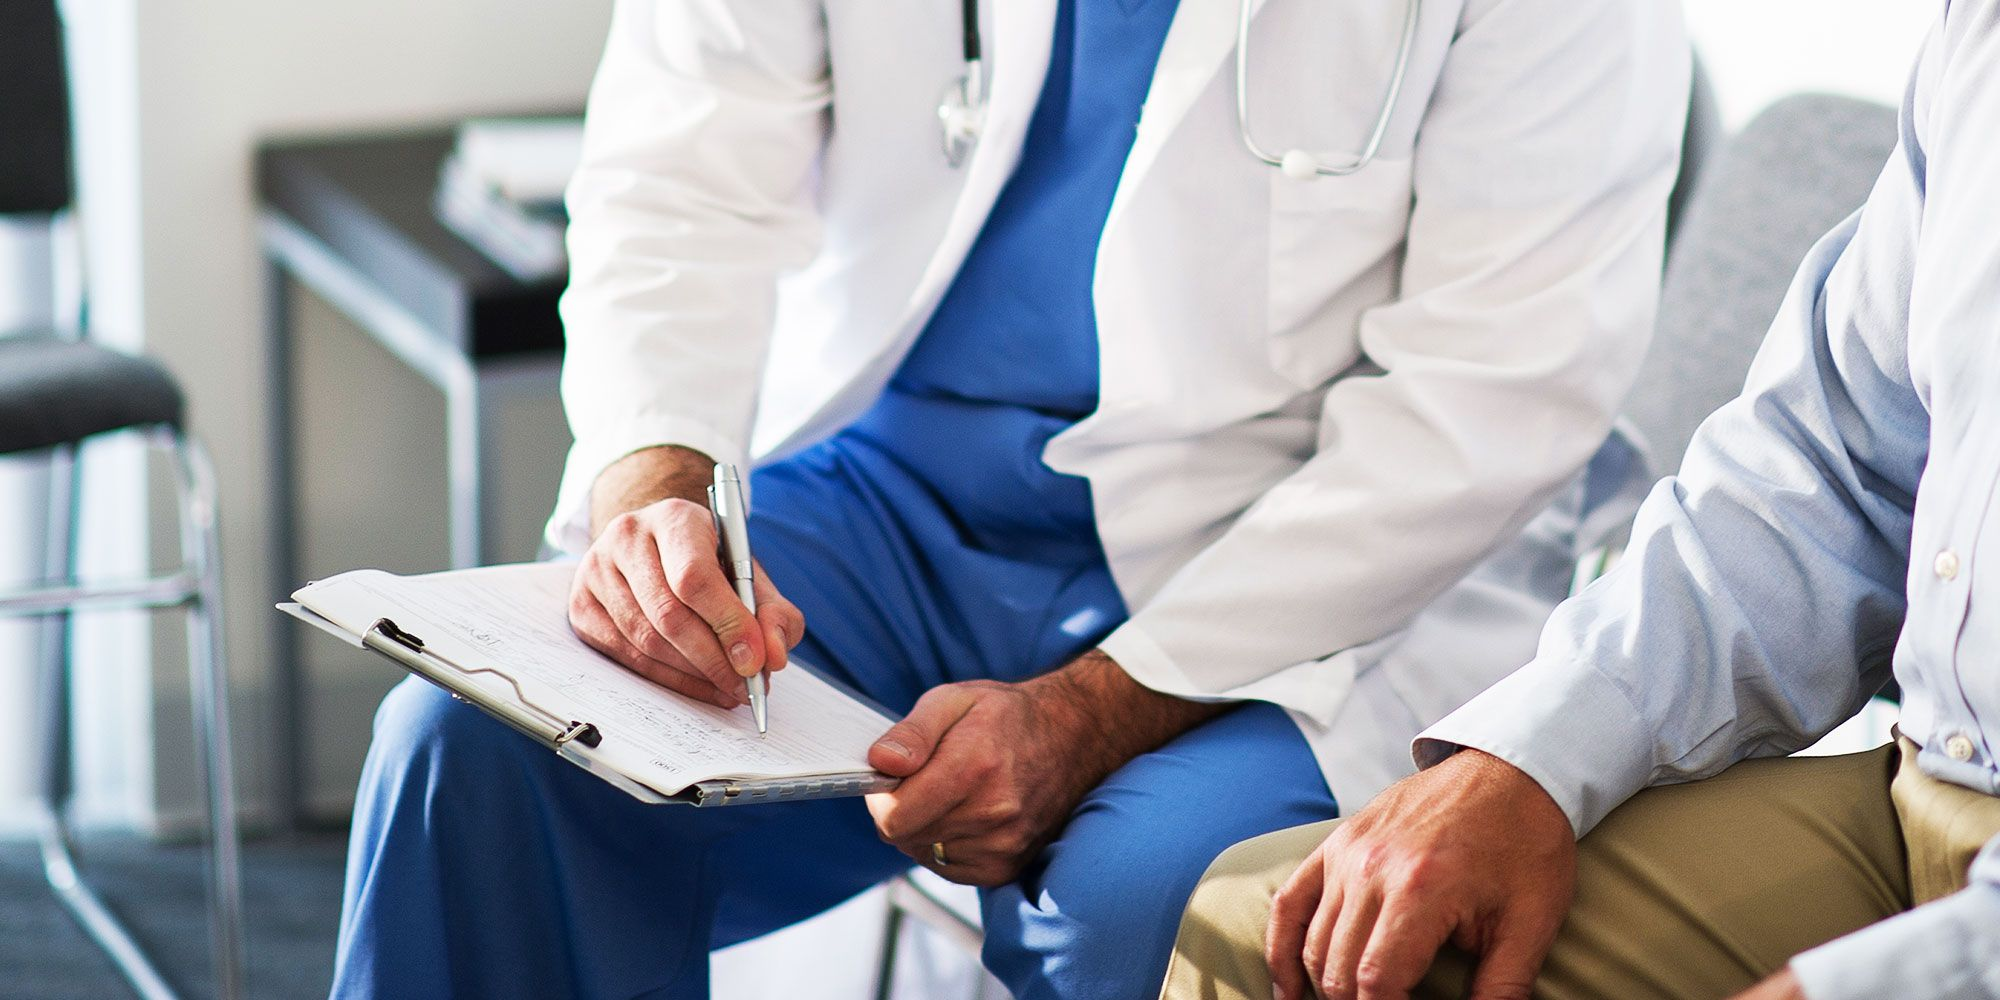 The Health Screenings All Men Need at Every Age